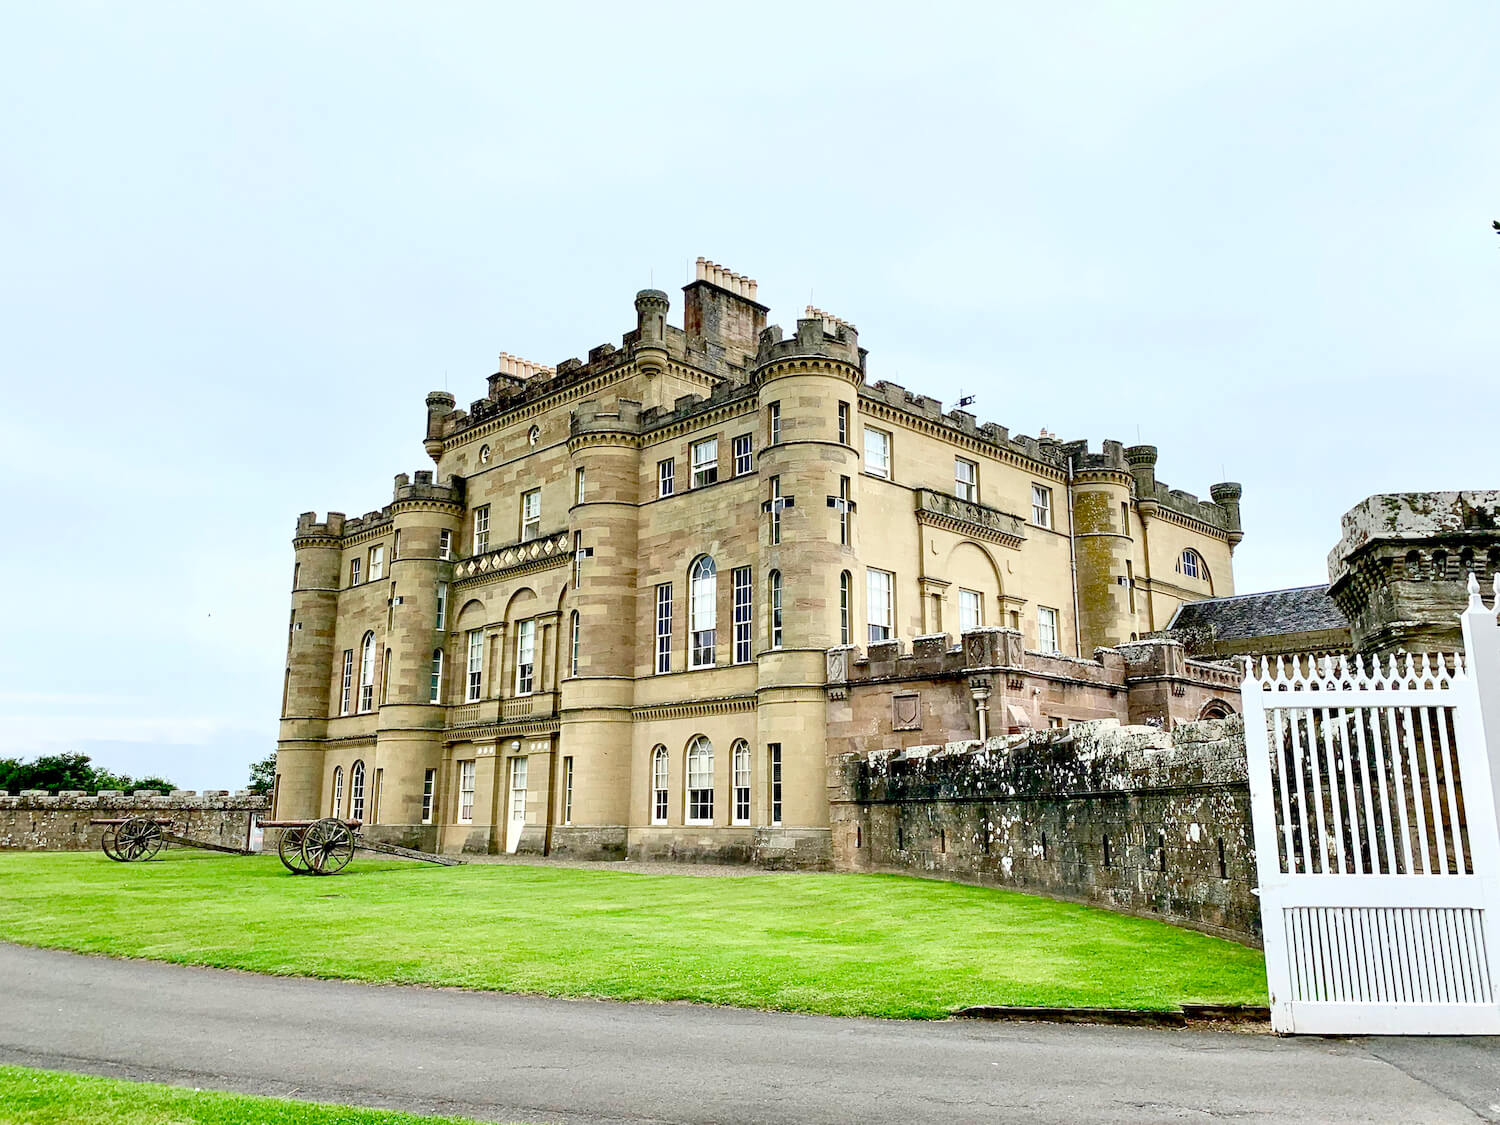 Culzean Castle and Country Park - Castle From The Outside